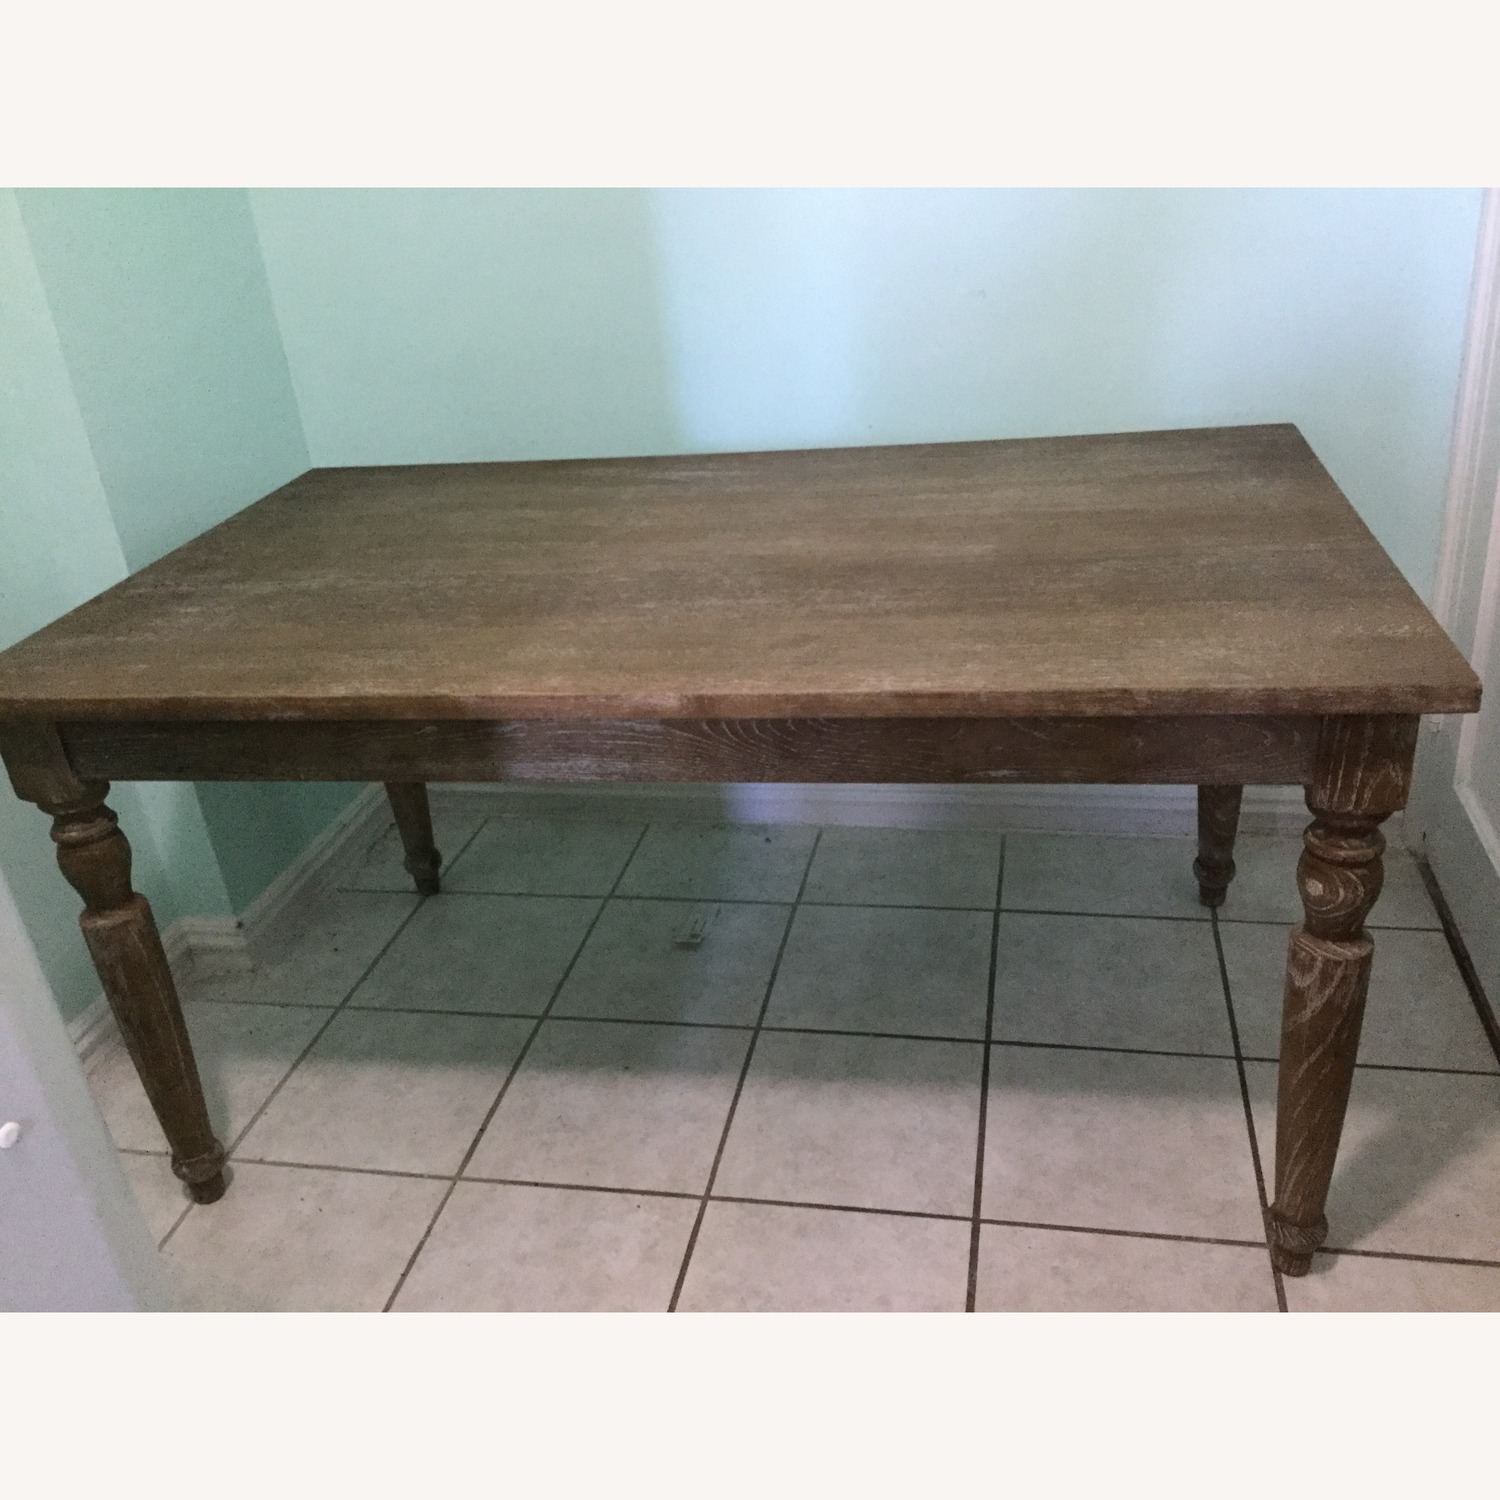 Stratford Dining Table with Chairs - image-5